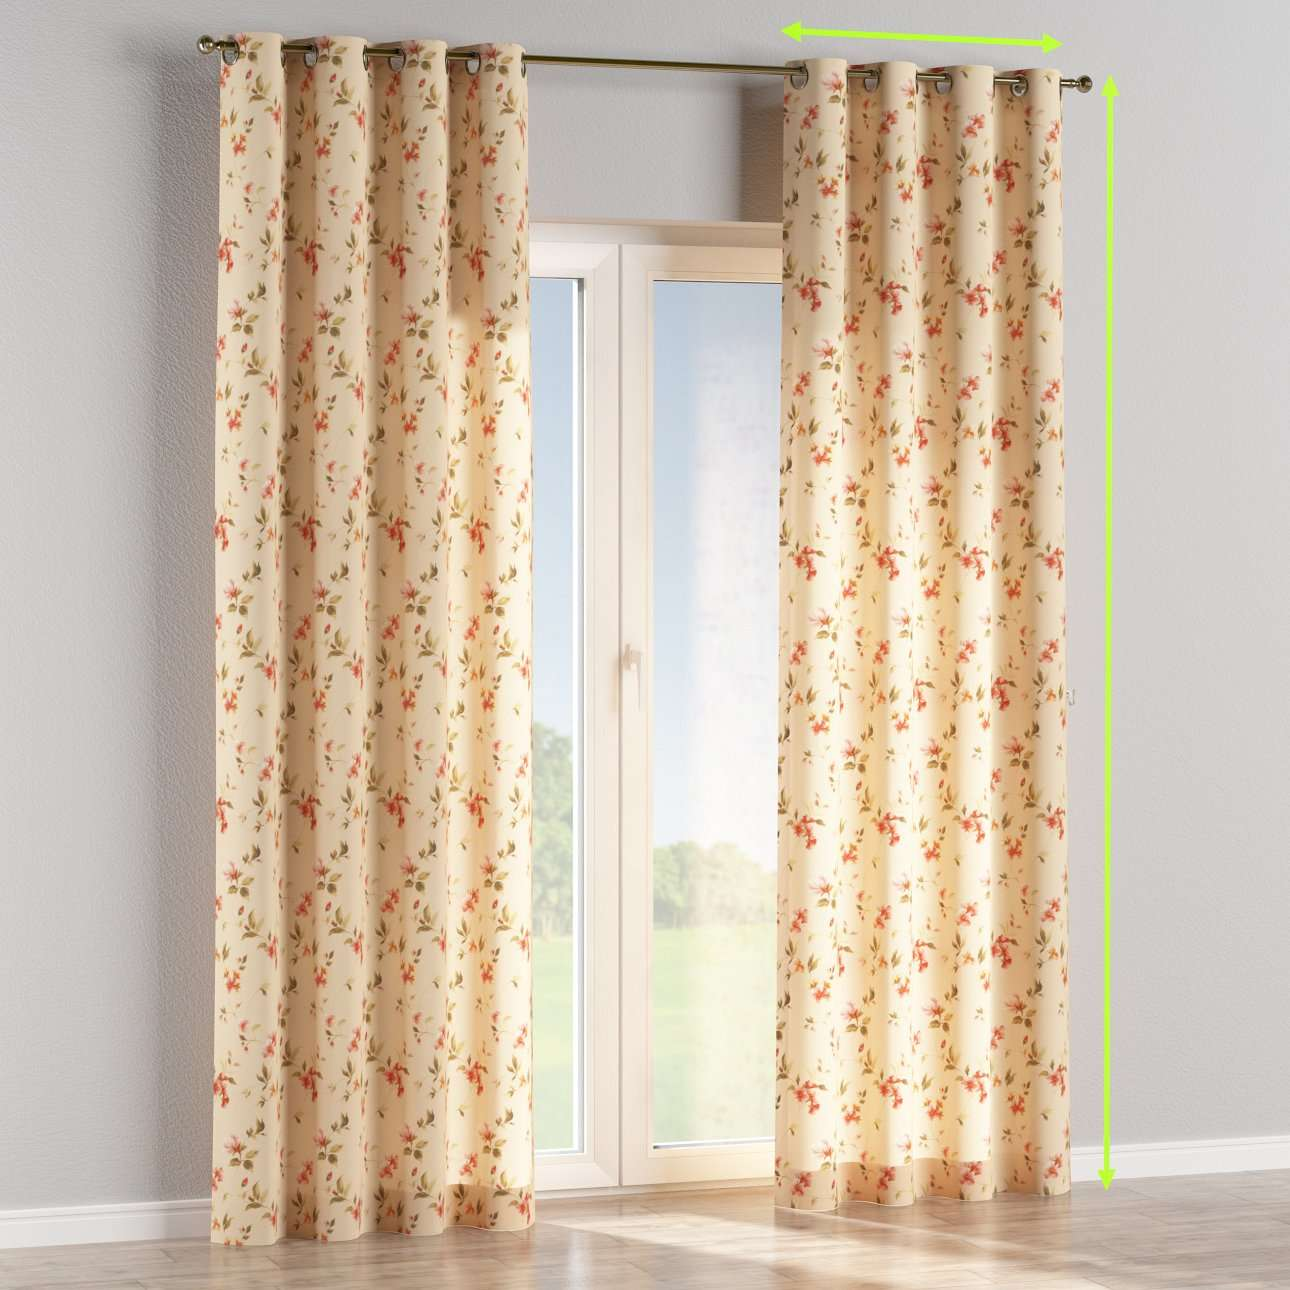 Eyelet curtains in collection Londres, fabric: 124-05